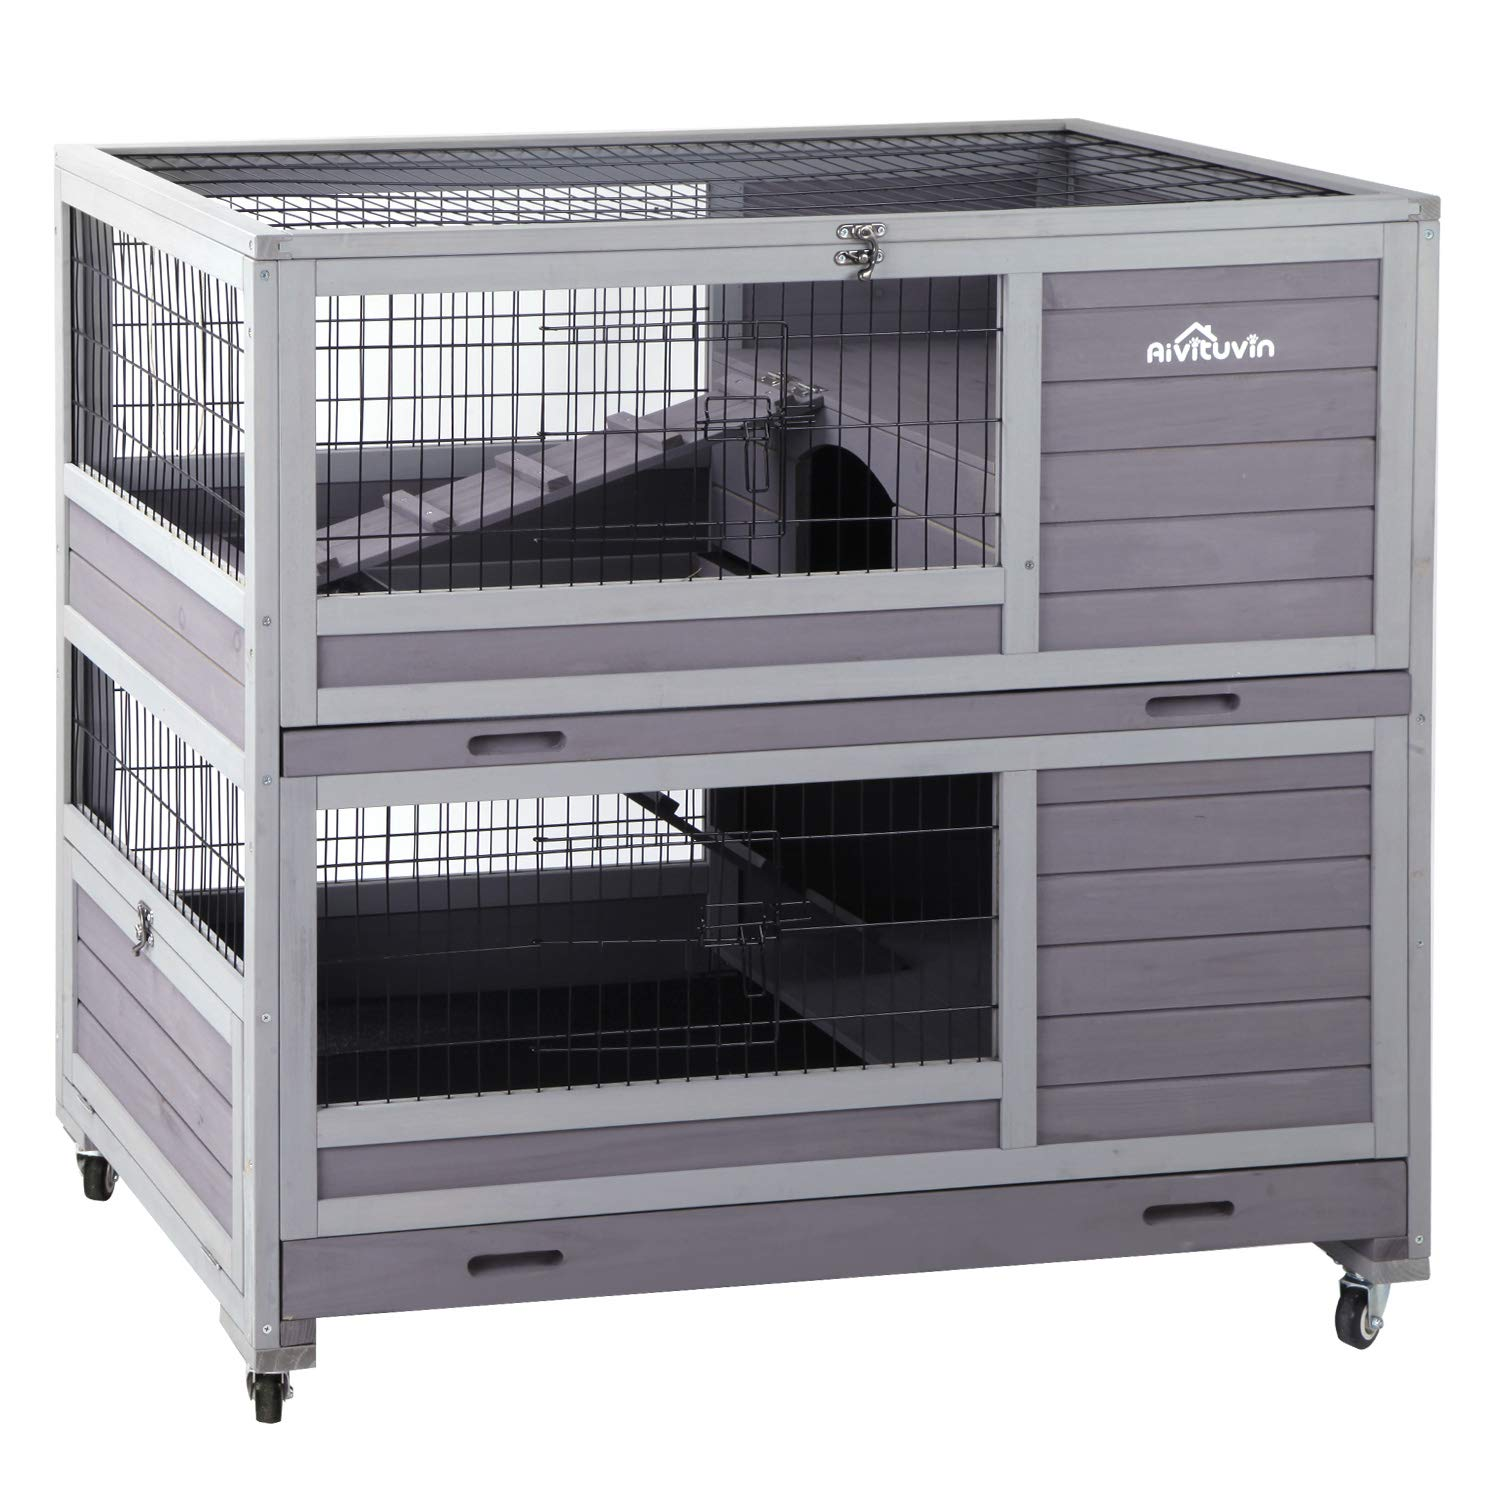 Aivituvin Rabbit Hutch Indoor and Outdoor Bunny Cage on Wheels Guinea Pig Cage with Deep No Leak Pull Out Tray by Aivituvin